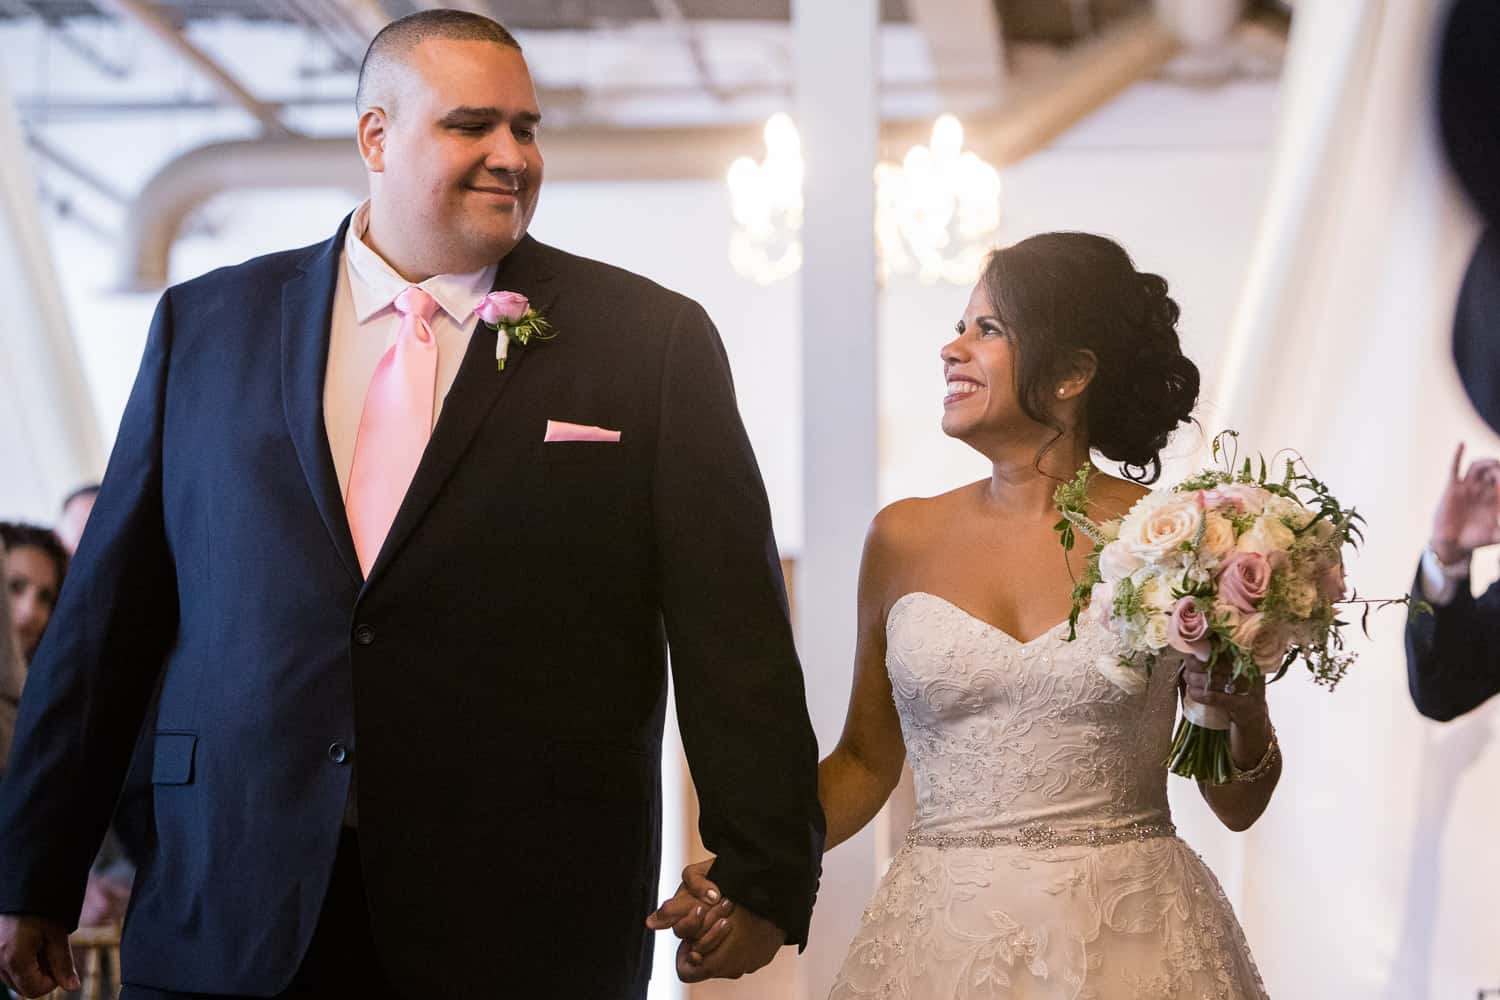 Rosemary's brother walks her down the aisle at her Arbor Loft Wedding.